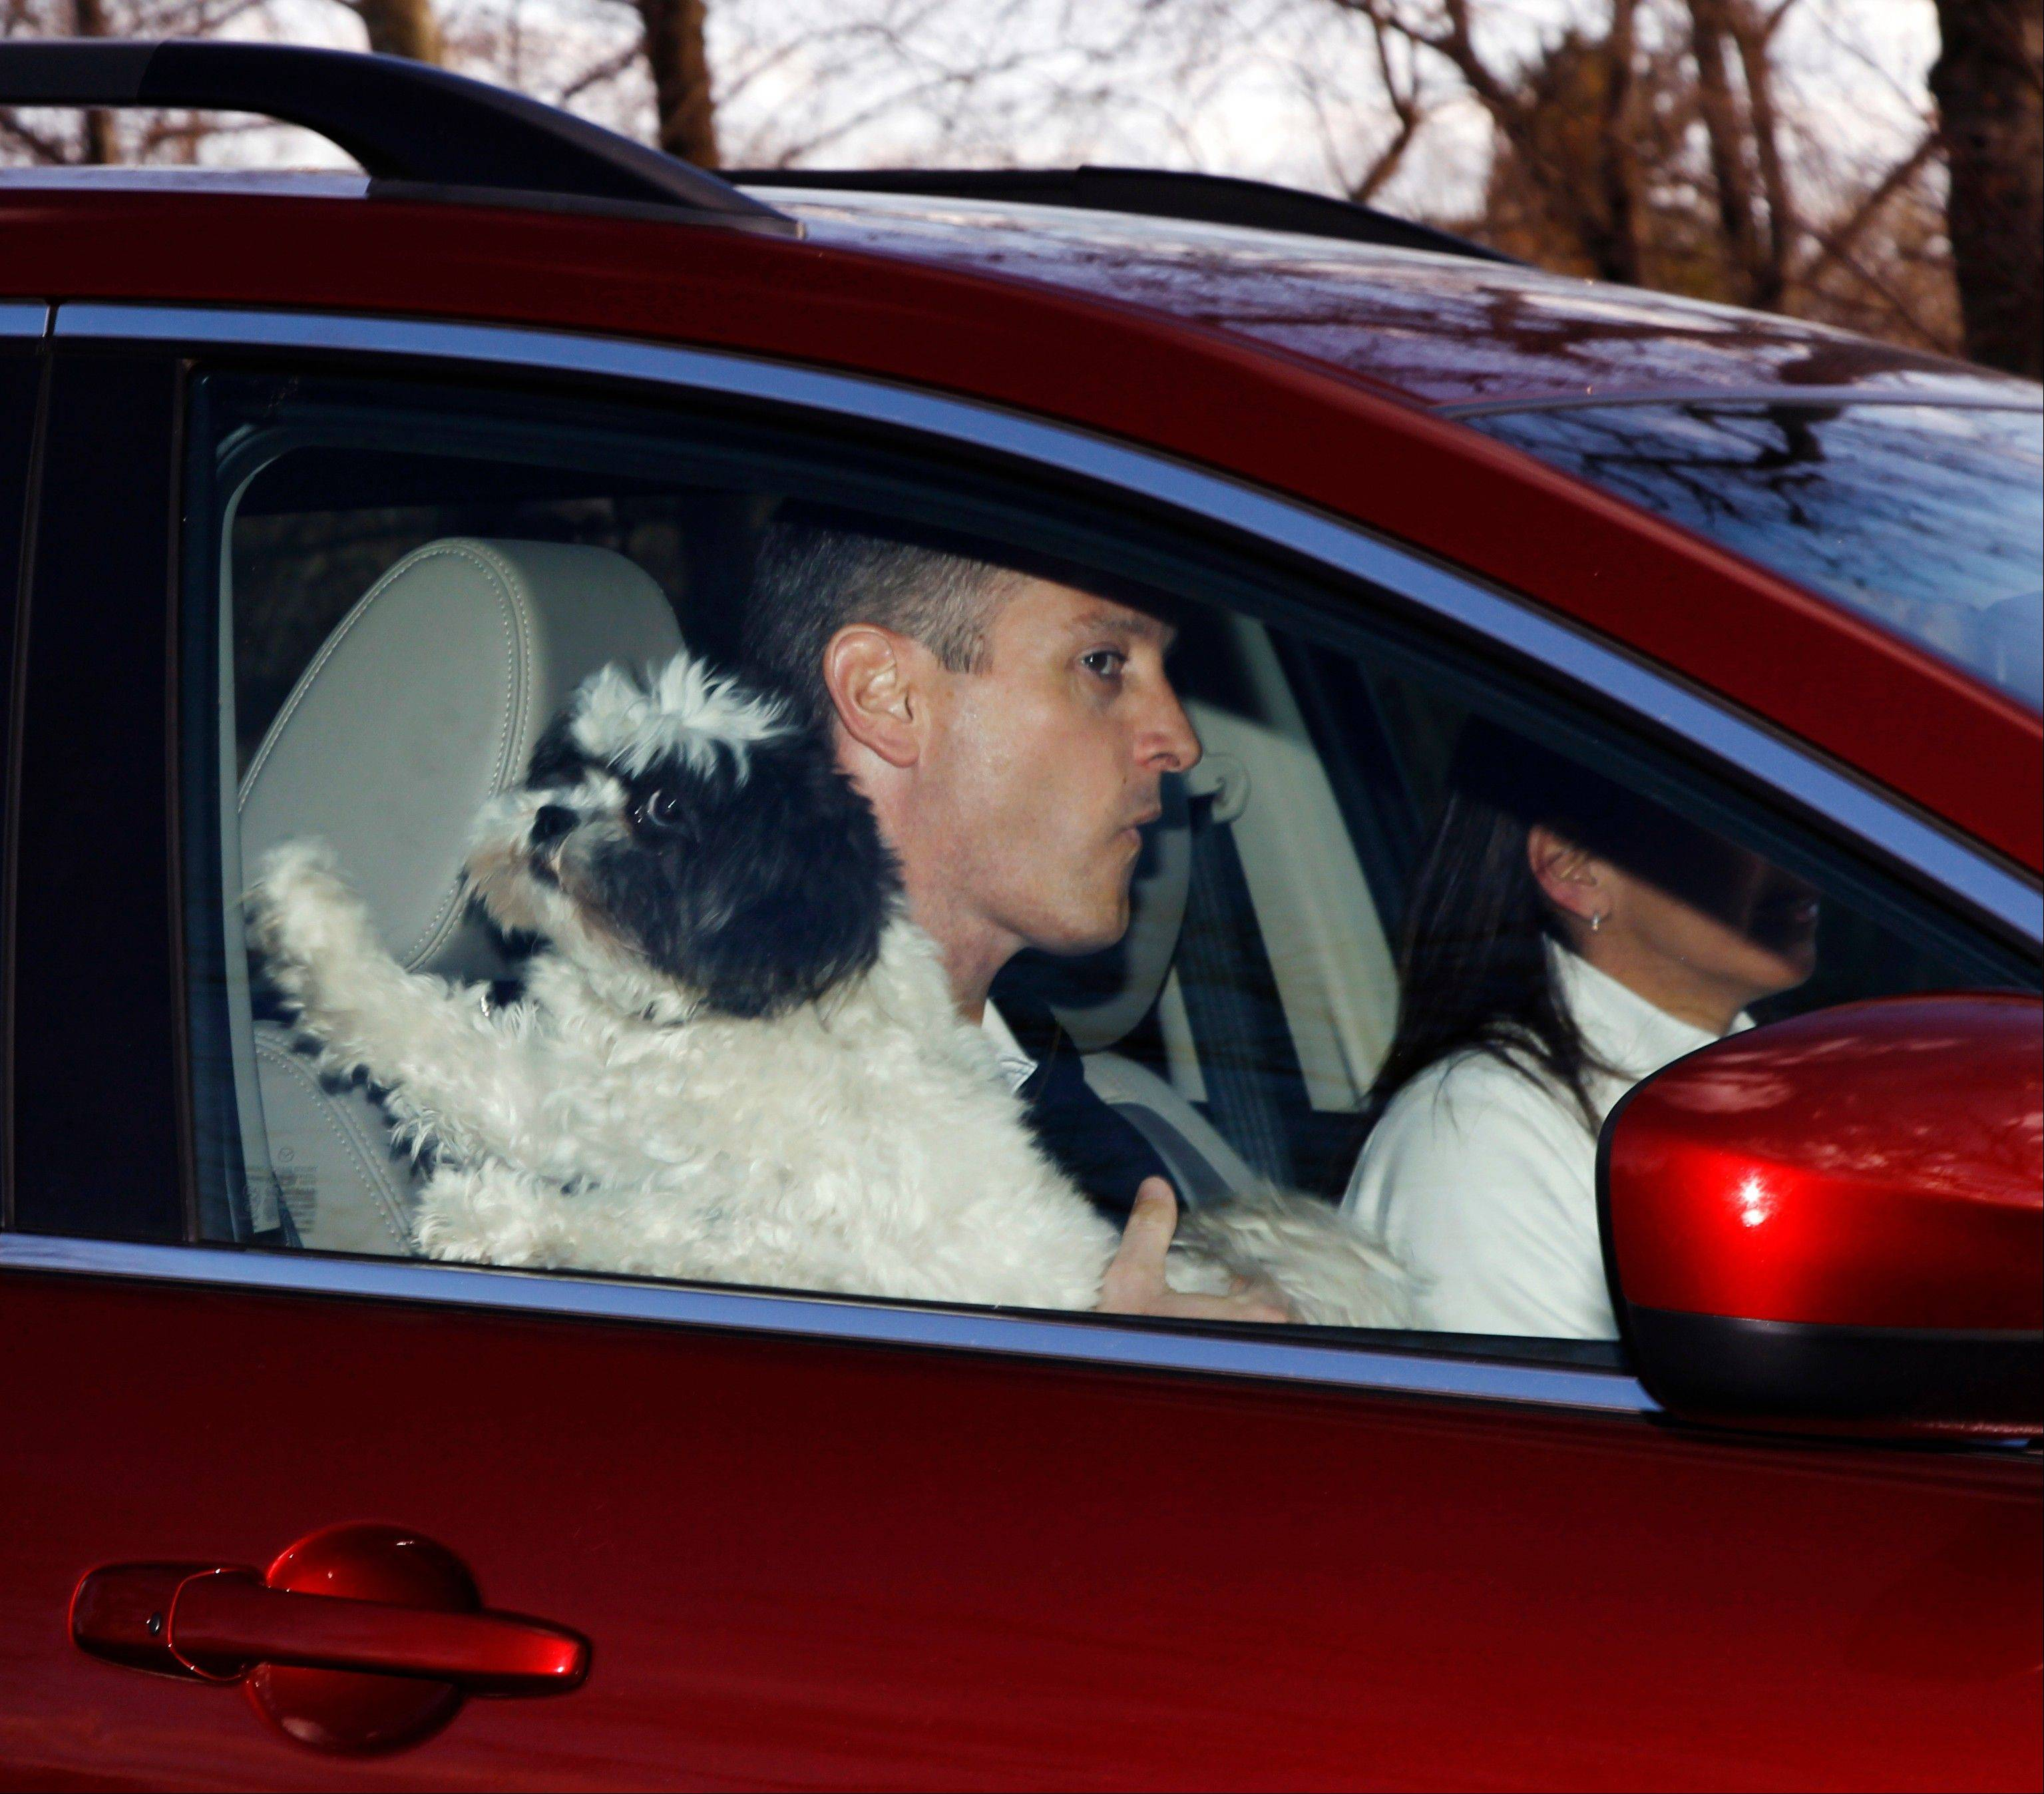 Former Rutgers head coach Mike Rice is driven from his home, Wednesday, April 3, 2013, in Little Silver, N.J. Rice is due a $100,000 bonus for lasting through the season.